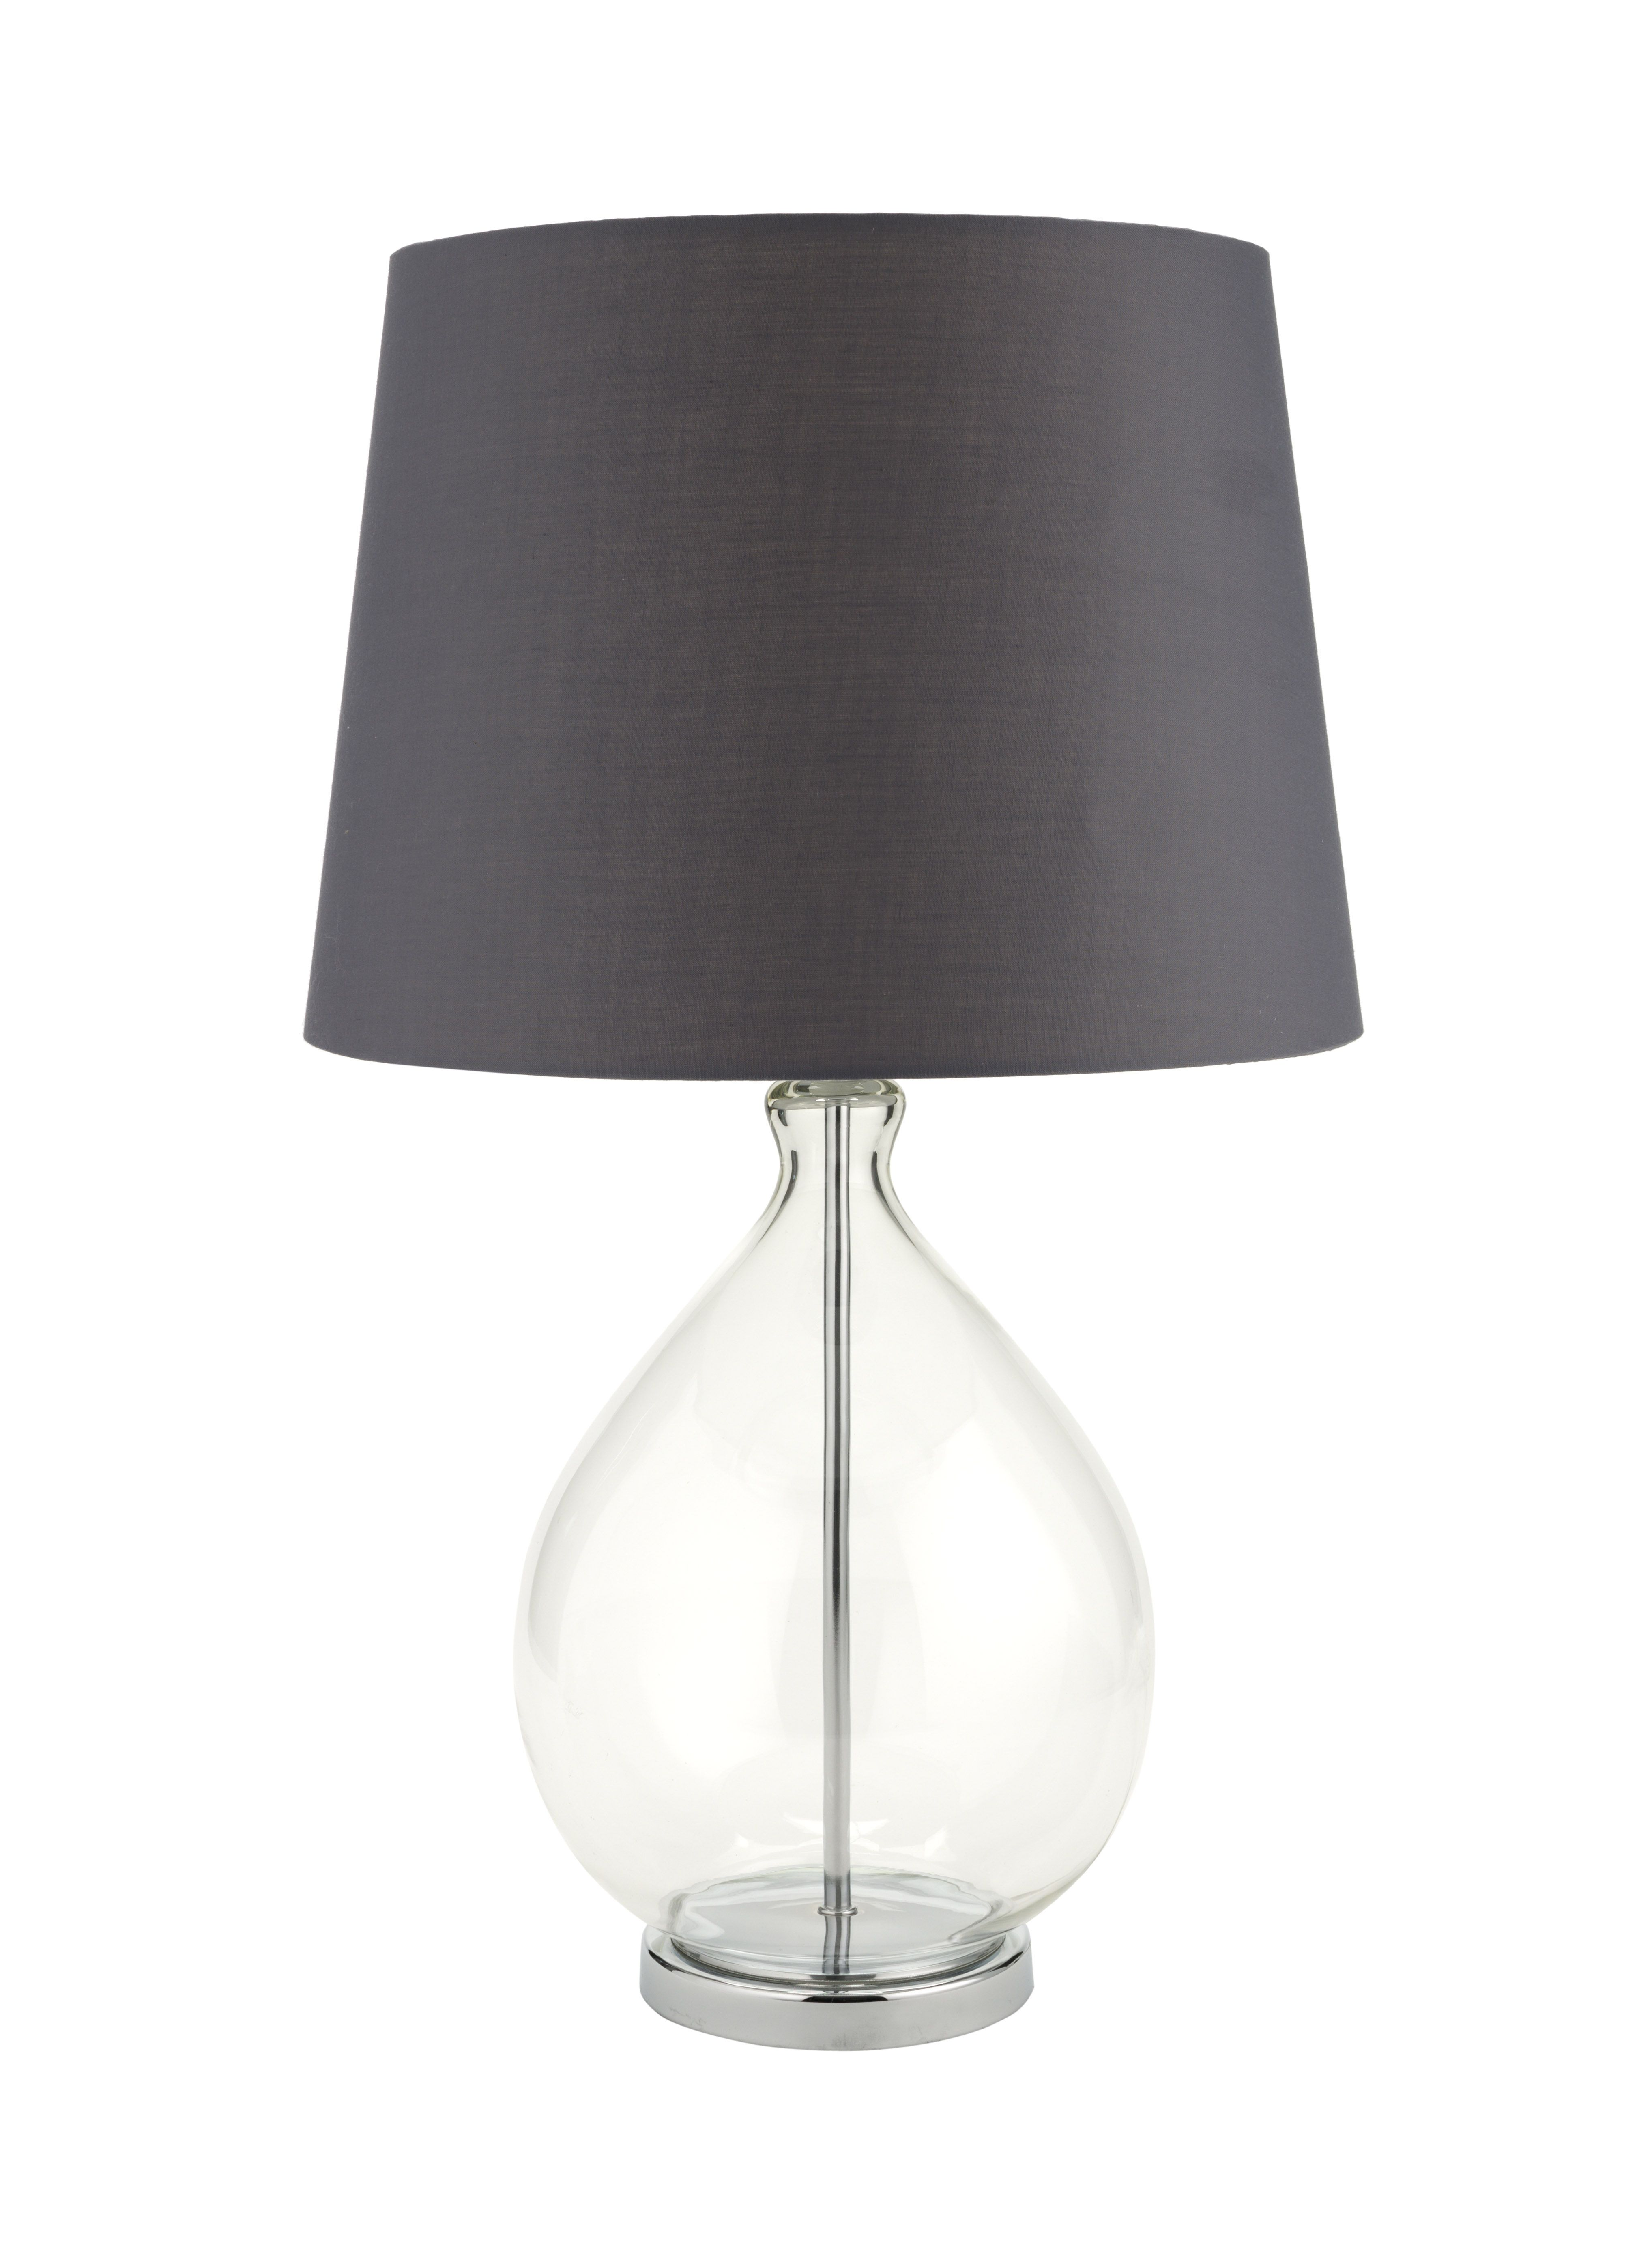 Glass exudes class in this simply elegant table lamp the neat glass exudes class in this simply elegant table lamp the neat grey shade looks lovely geotapseo Image collections